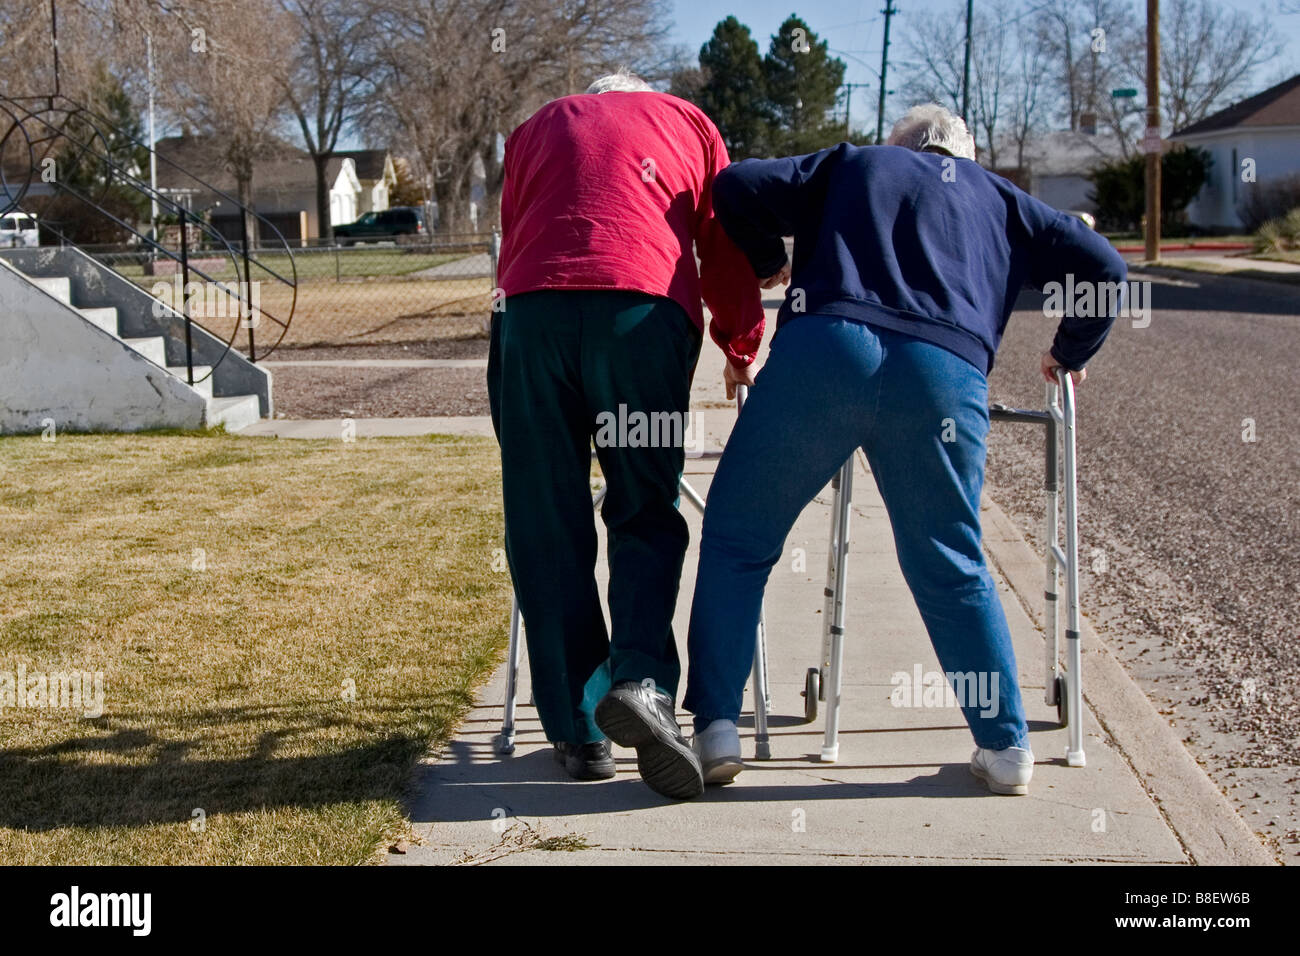 One Person Golf Cart >> Two elderly senior citizens walk away using walkers, the woman Stock Photo: 22454723 - Alamy